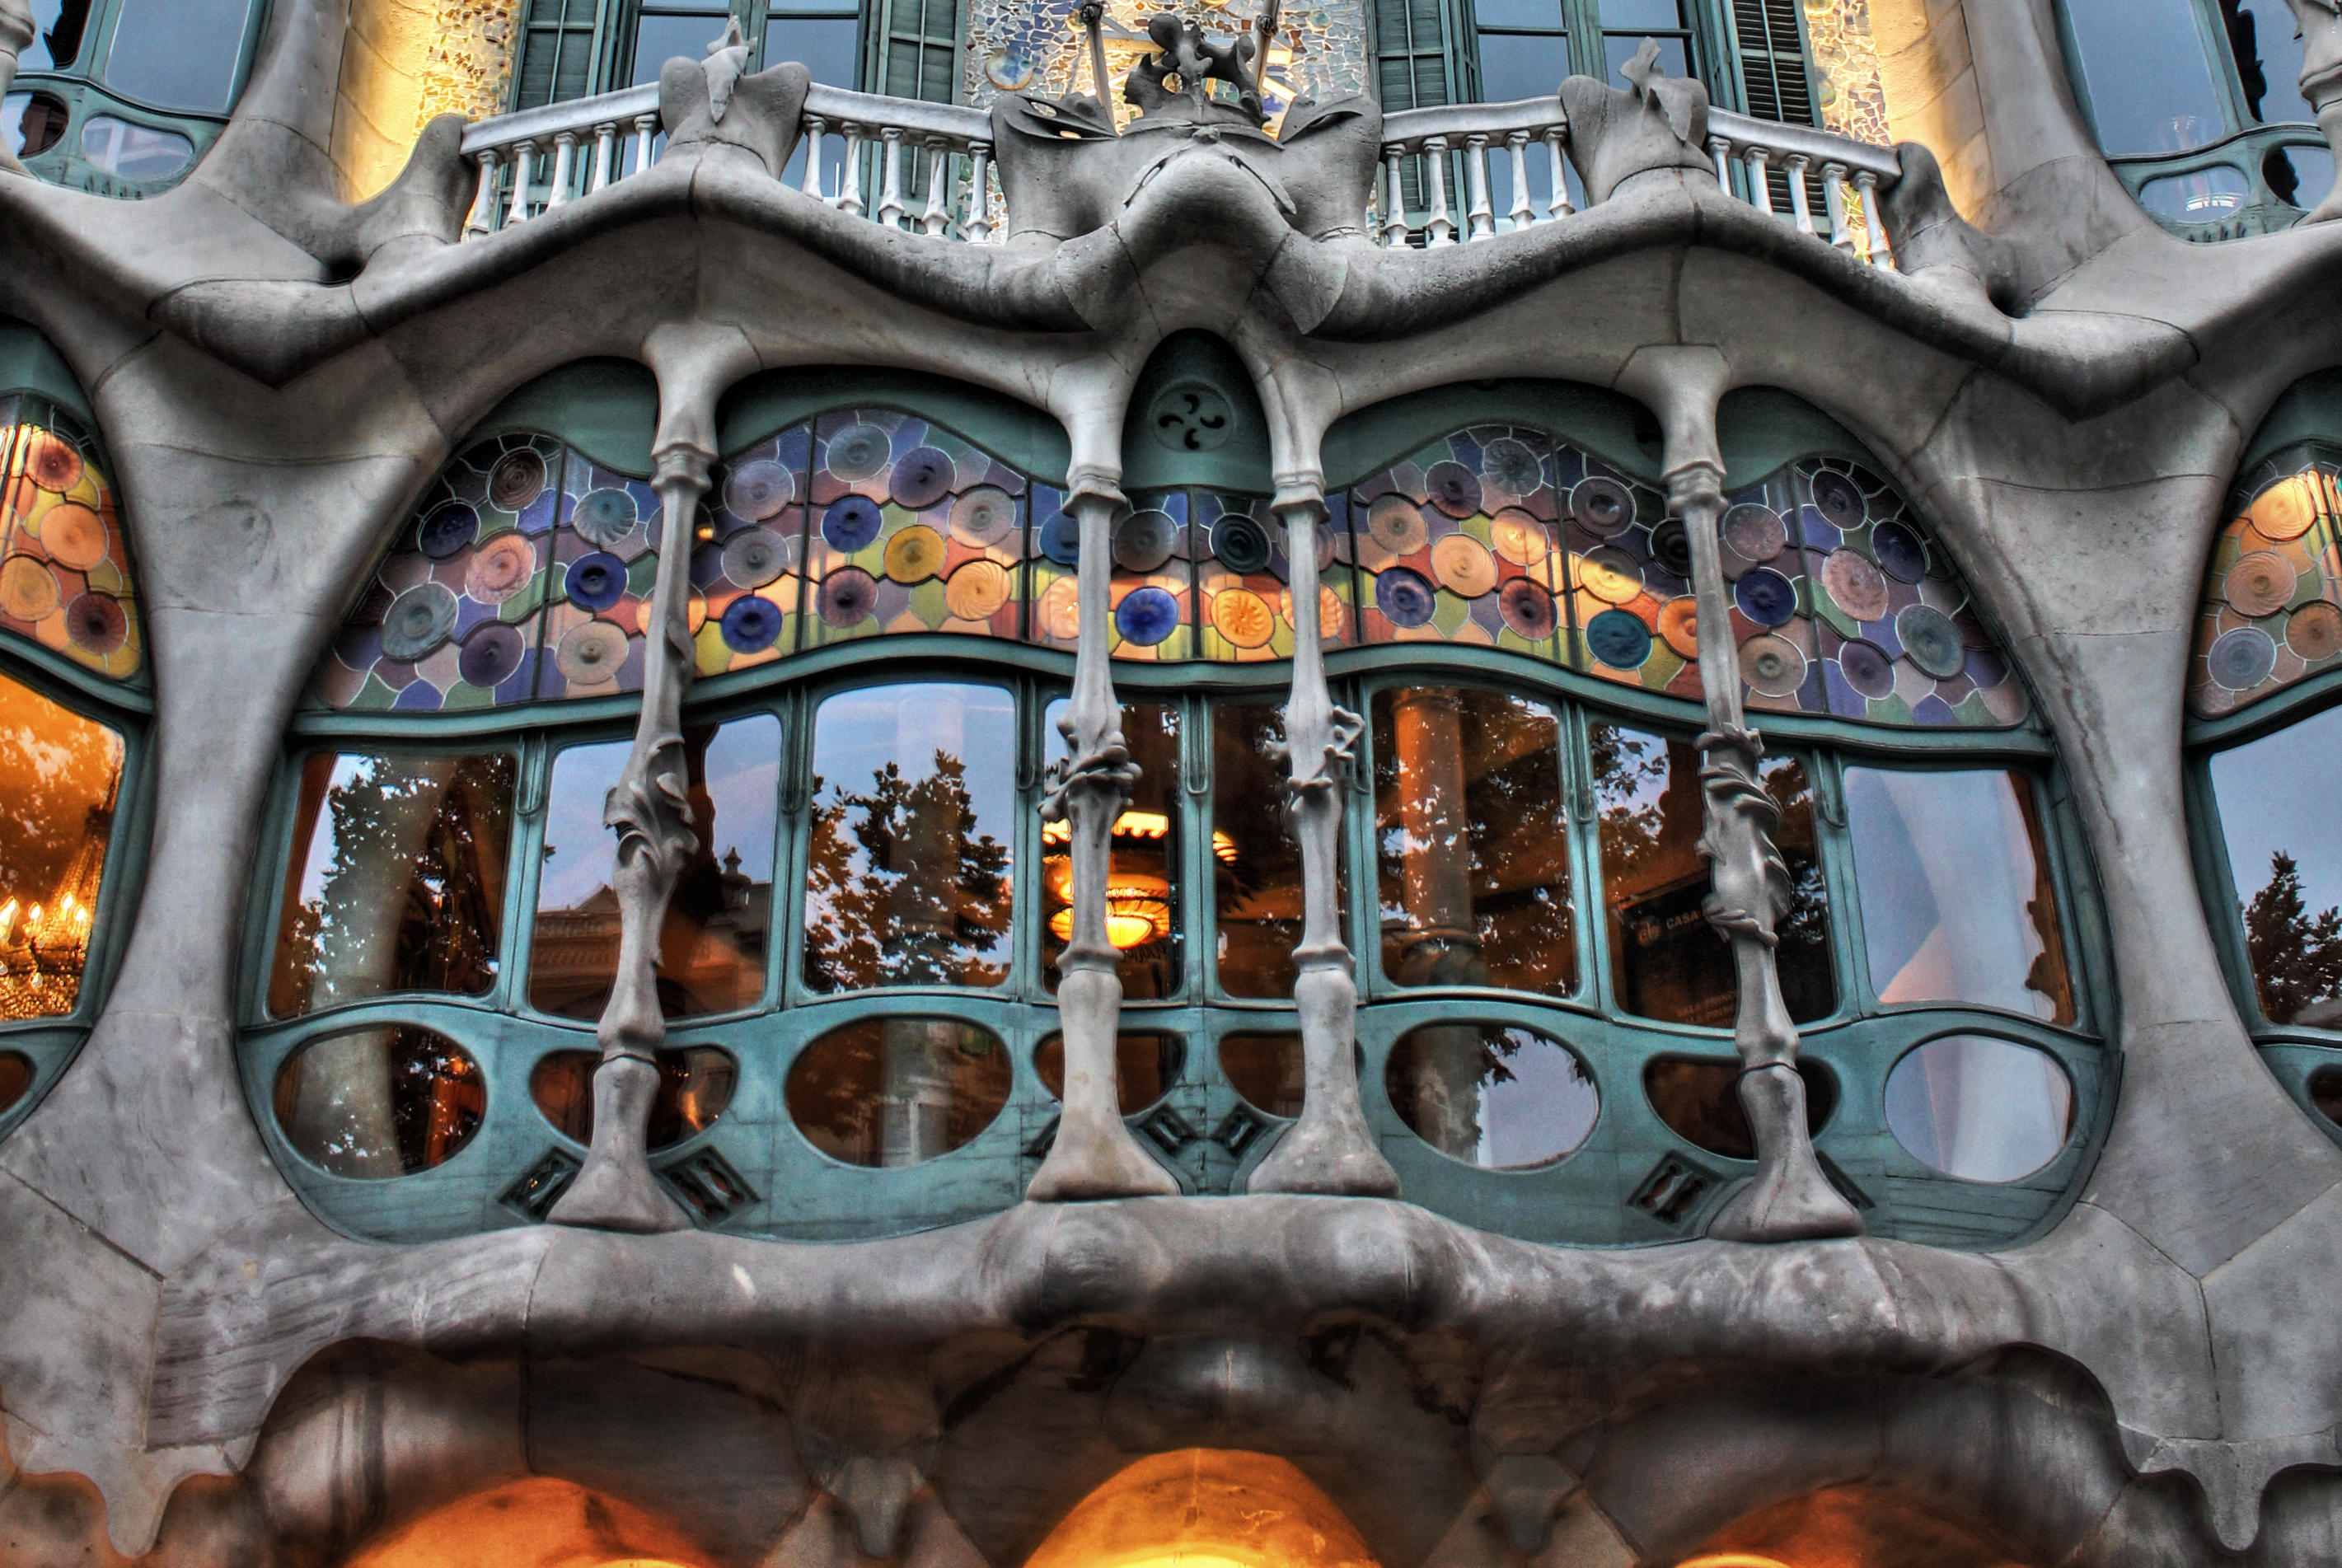 Casa Batllo by Logan-chem